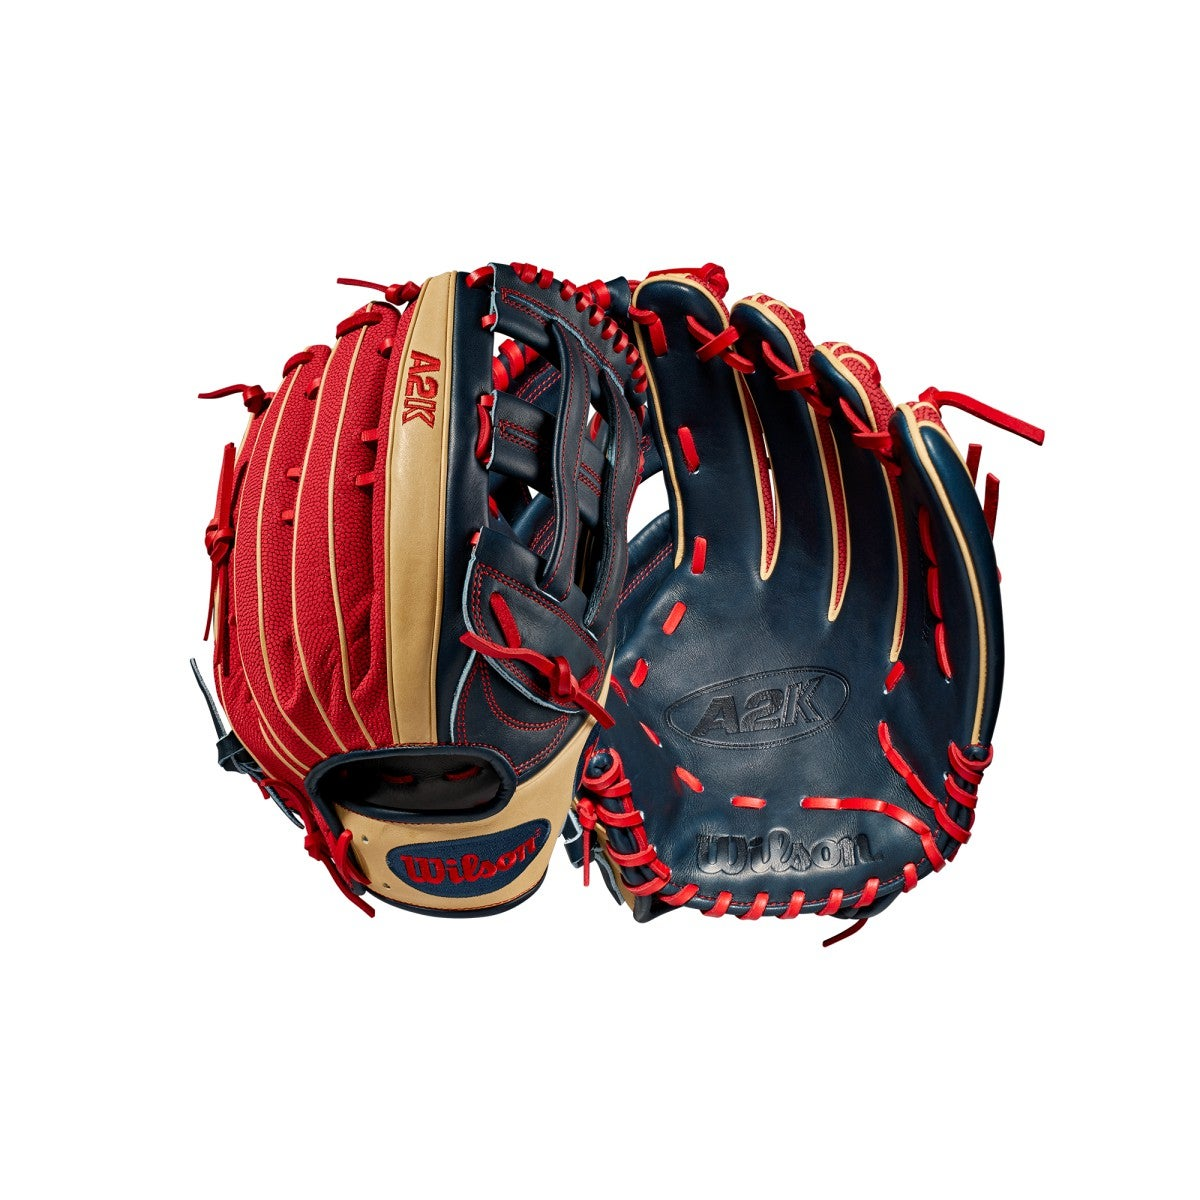 Wilson A2k Mb50 Gm Mookie Betts Outfield Baseball Glove